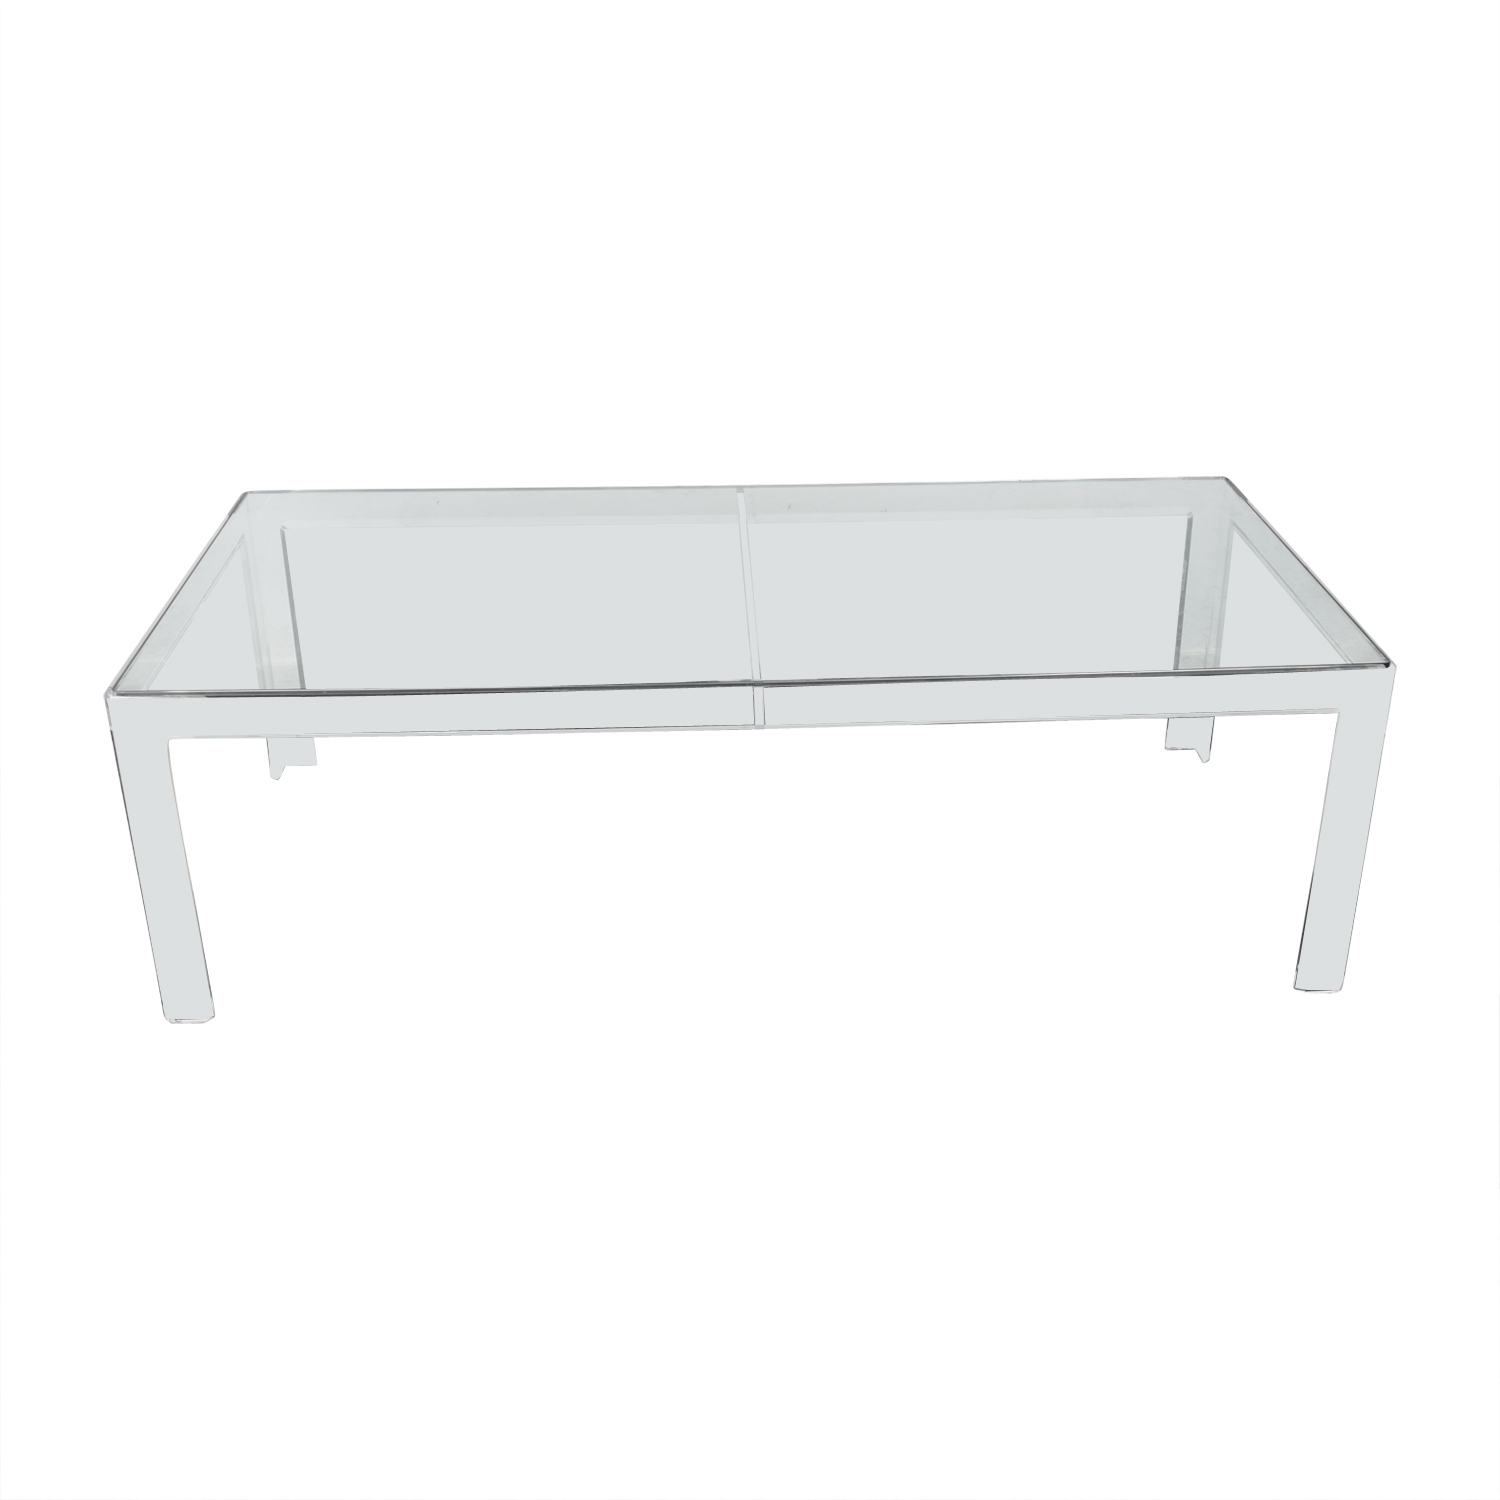 Lucite Mid Century Modern Table dimensions